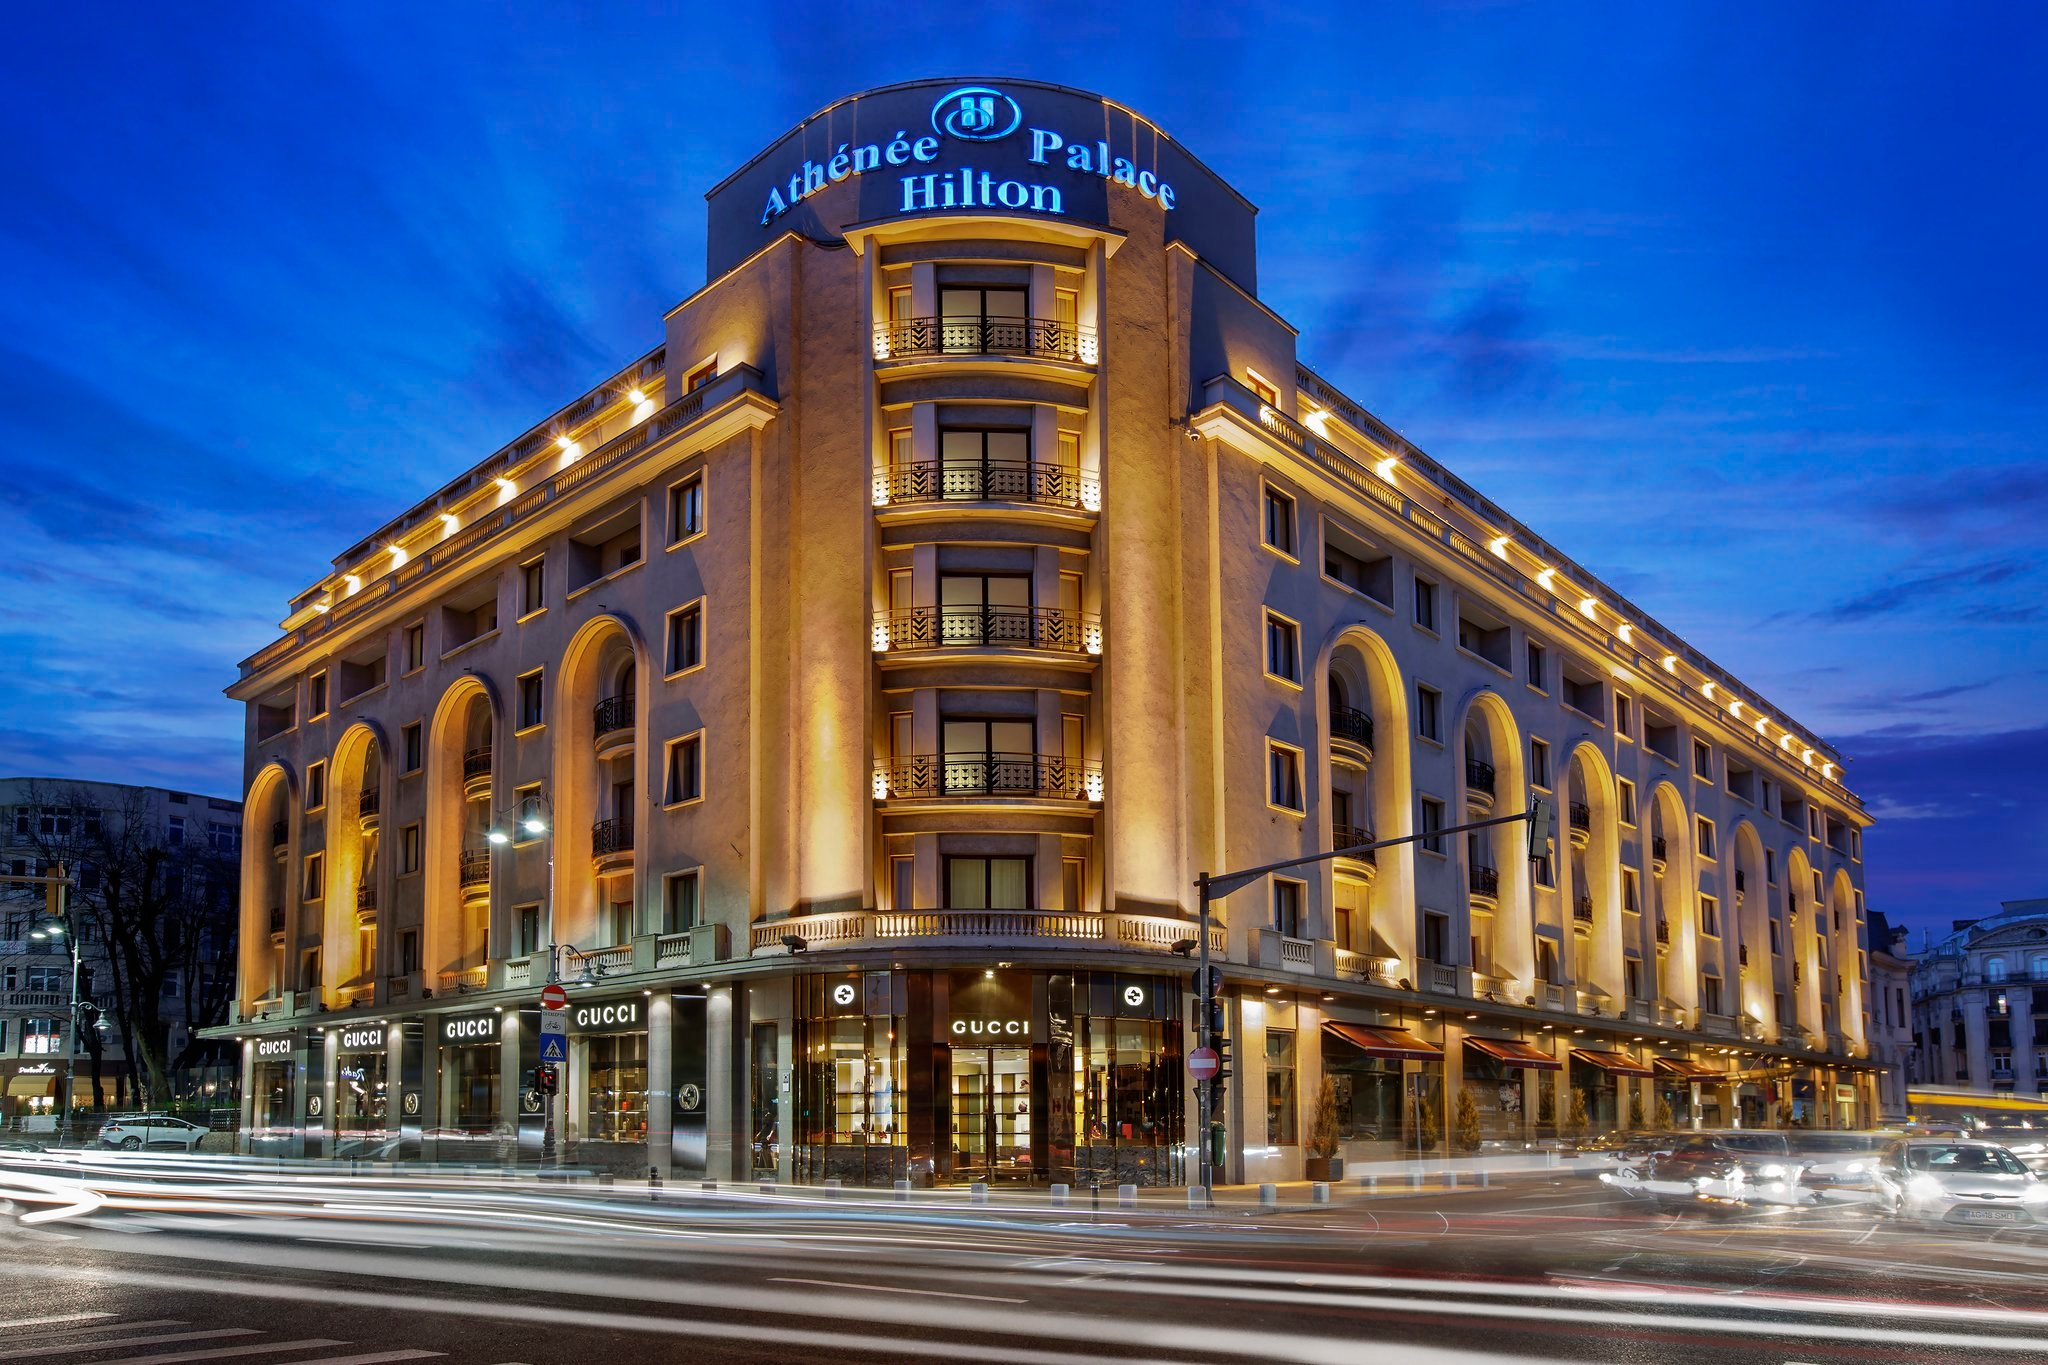 casino palace bucharest